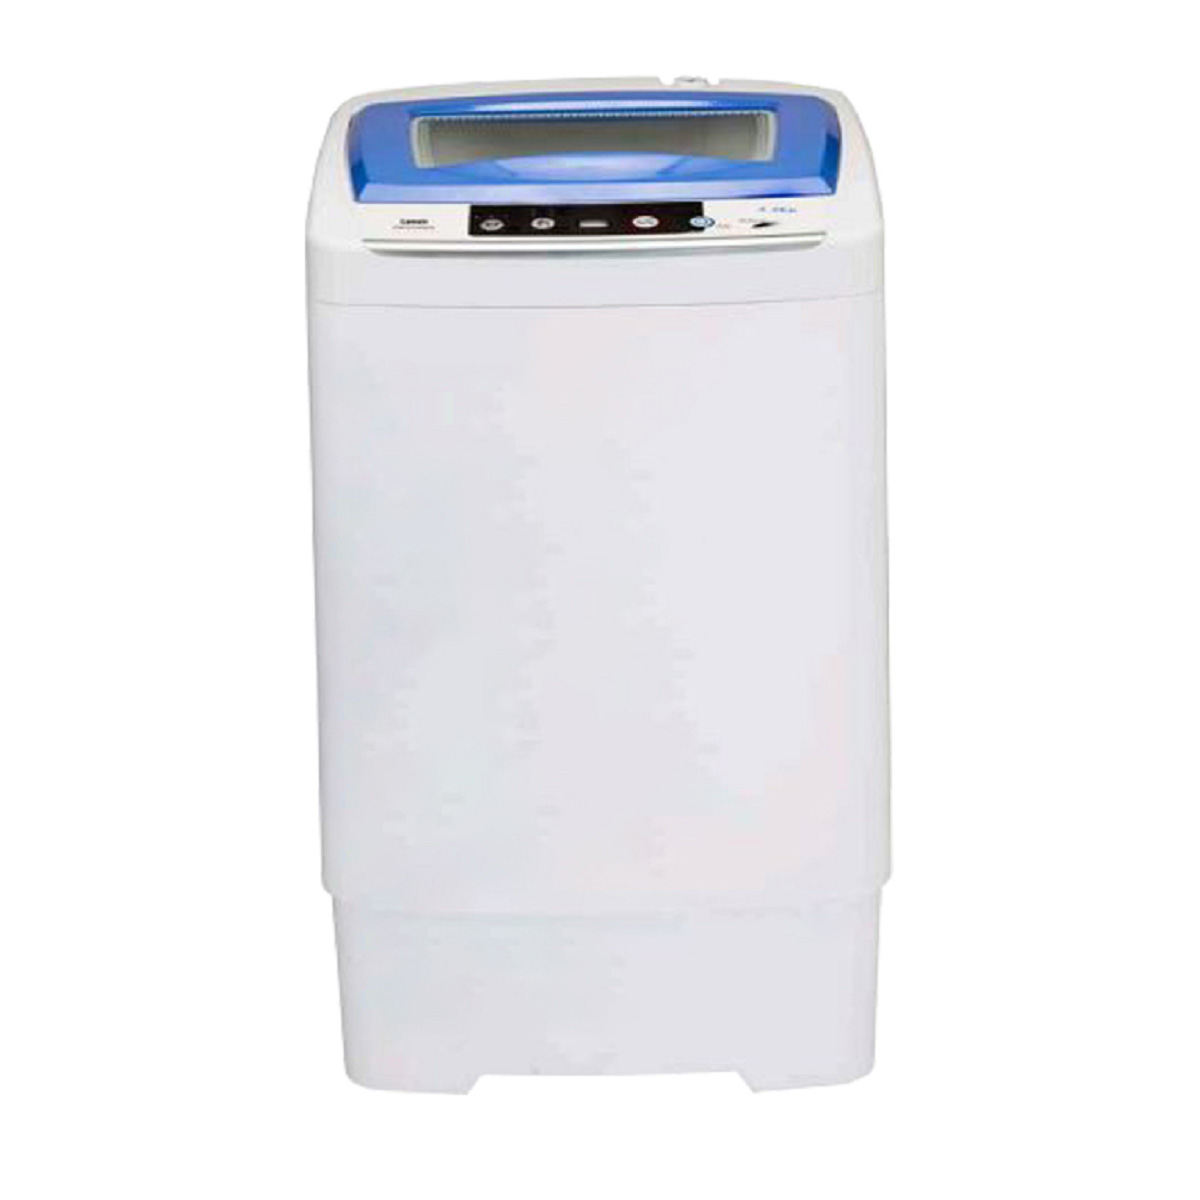 Lemair XQB32 3.2kg Top Load Washing Machine